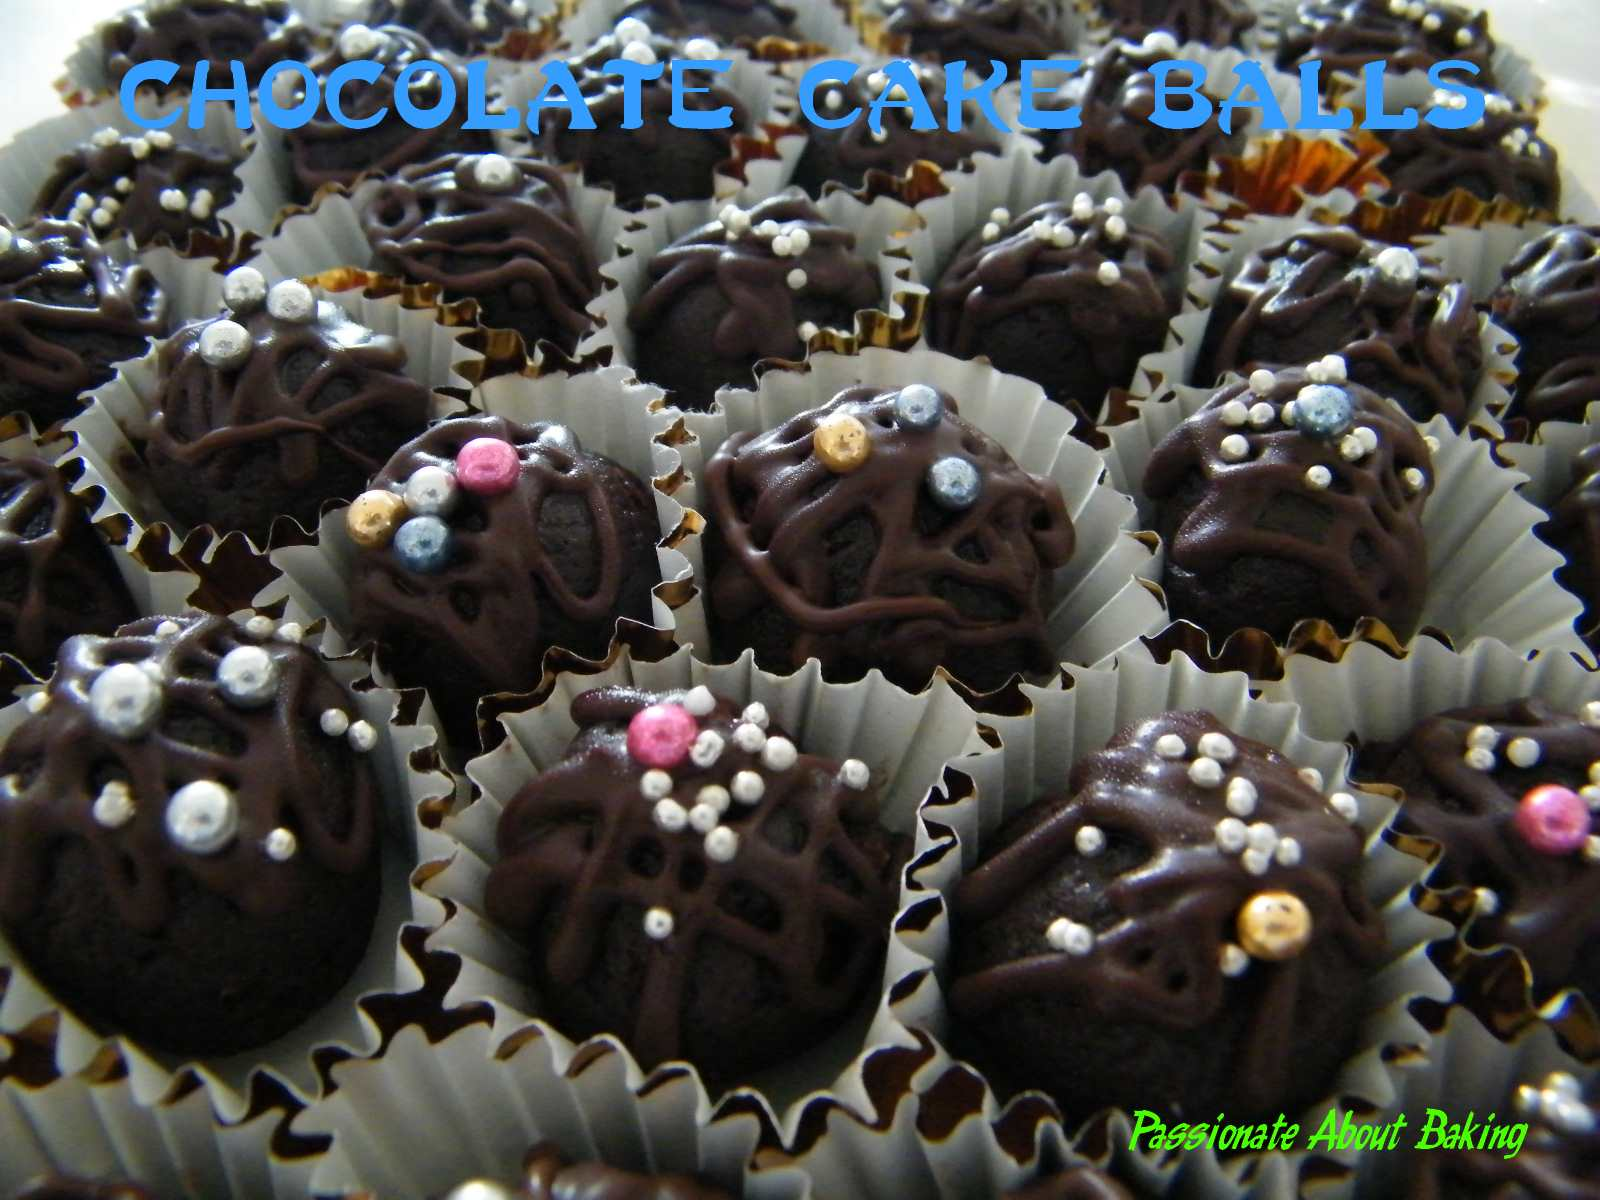 Chocolate Balls Cake Decoration : Chocolate Cake Balls Passionate About Baking